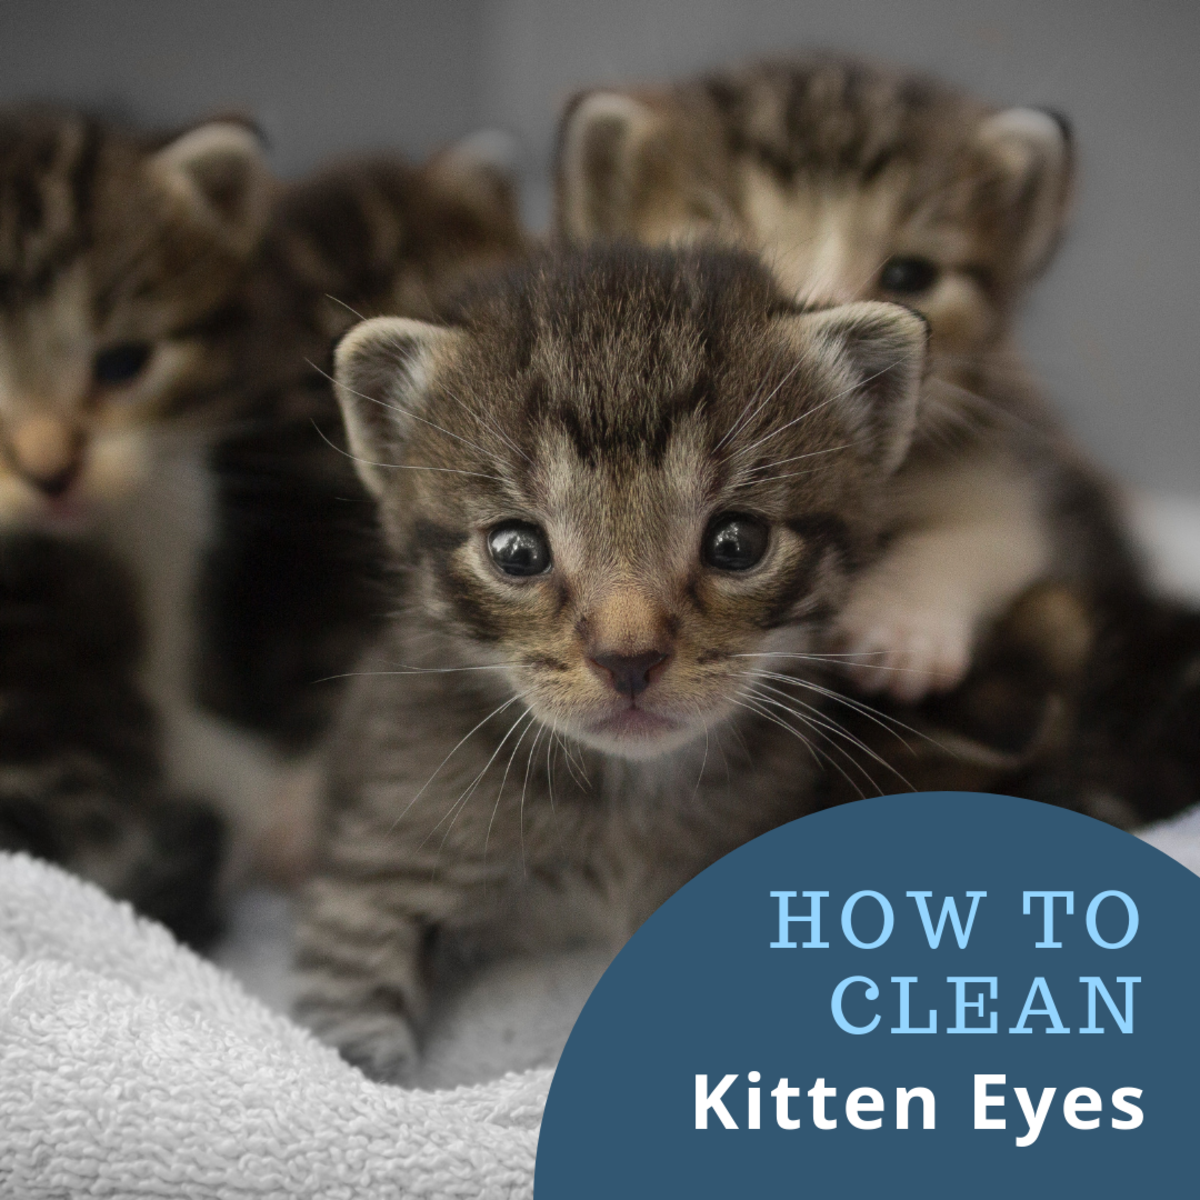 Tips for keeping kitten eyes clear and clean.